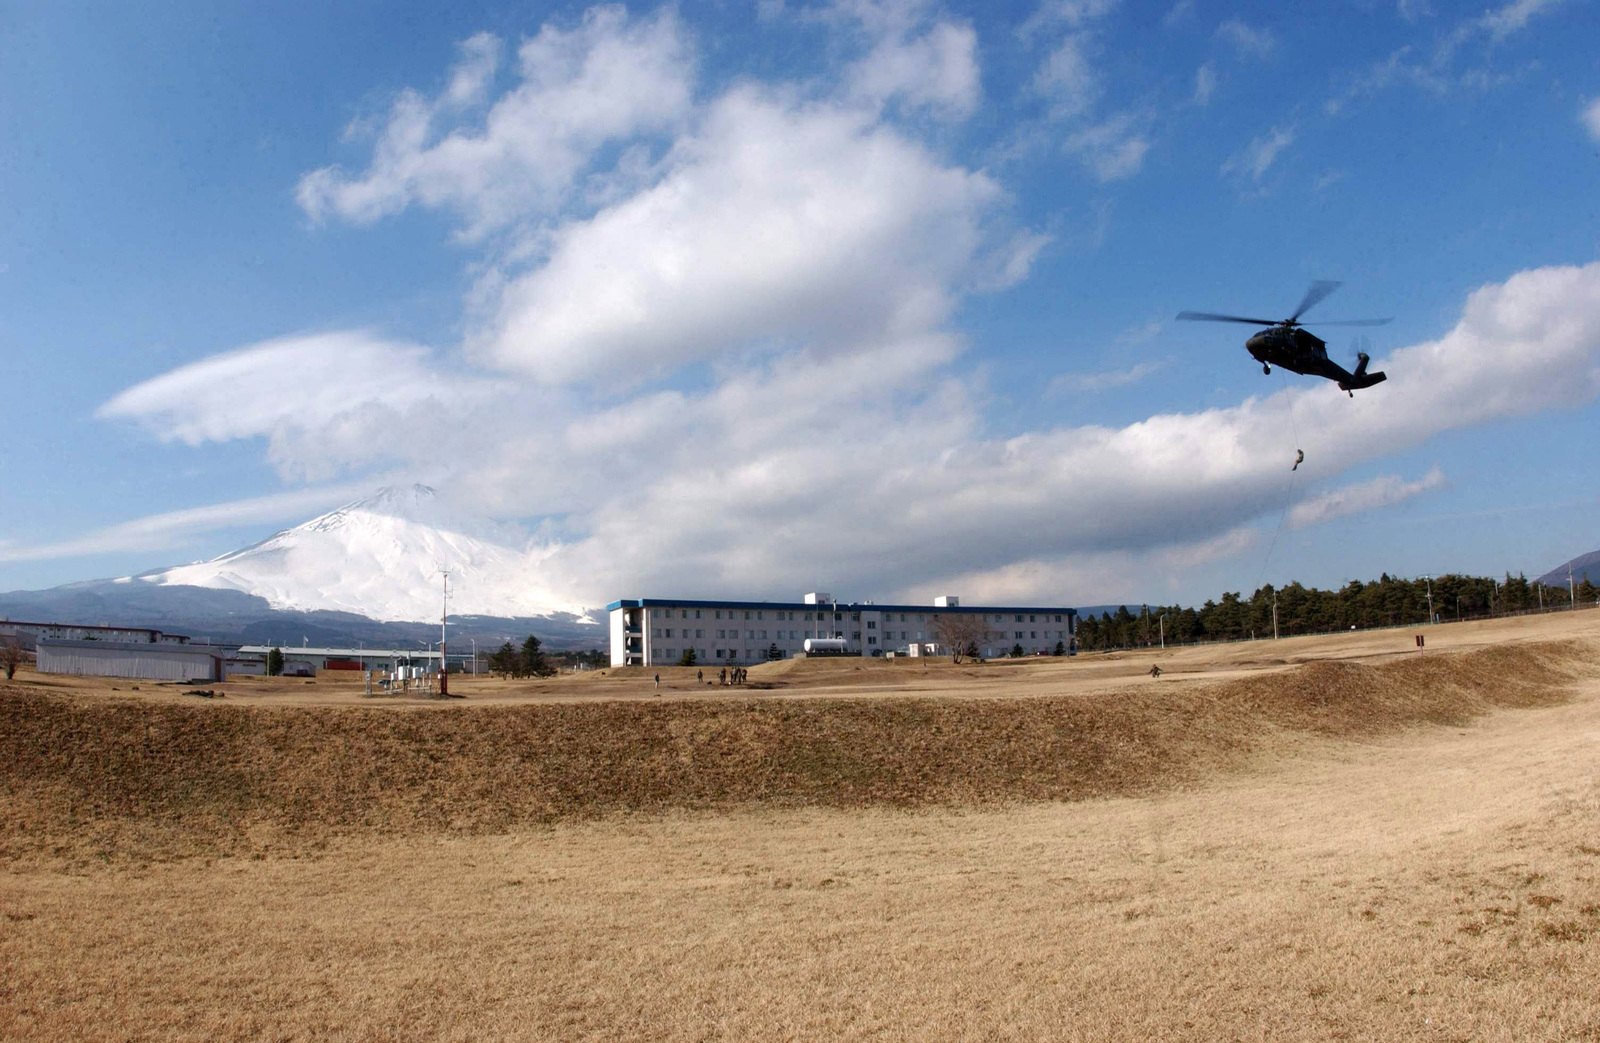 With Mt. Fuji as a backdrop, US Air Force (USAF) and US Marine Corps (USMC) members rappel from a US Army (USA) UH-60 Black Hawk helicopter from the 78th Aviation Battalion, Camp Zama, Japan, at Camp Fuji, Japan